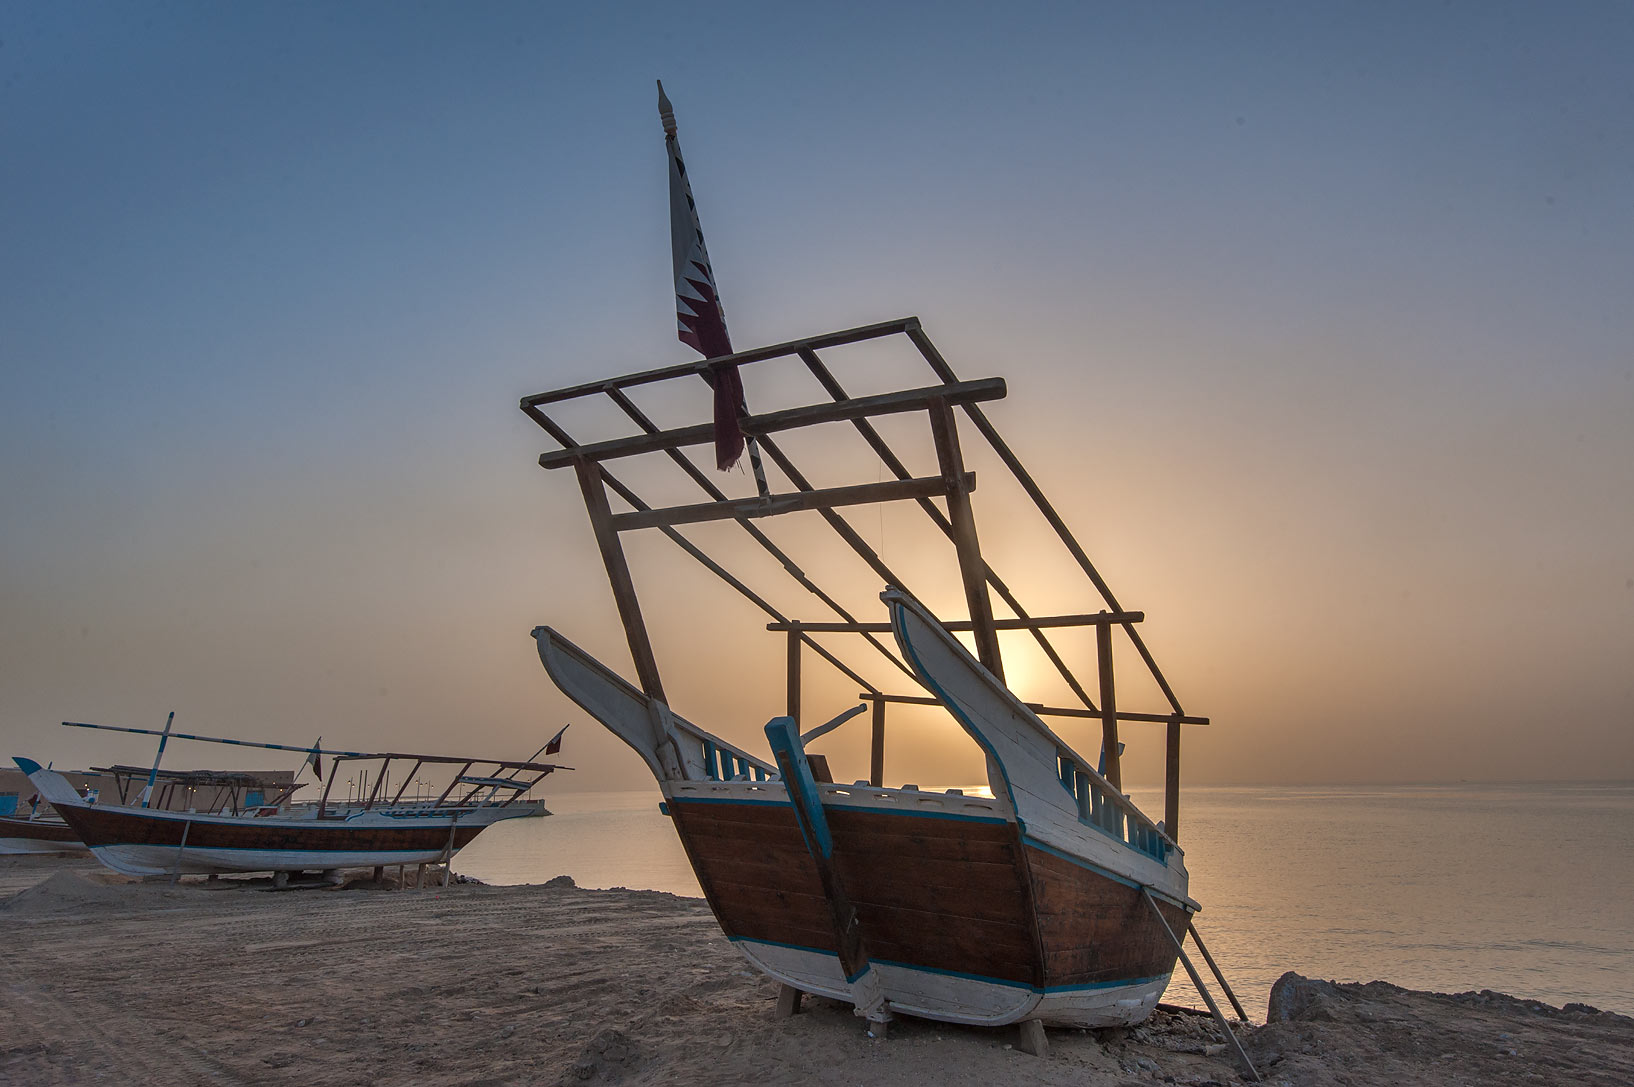 Dhow fishing boat on a beach against sun in Al...Souq Waqif in Al Wakrah). Qatar